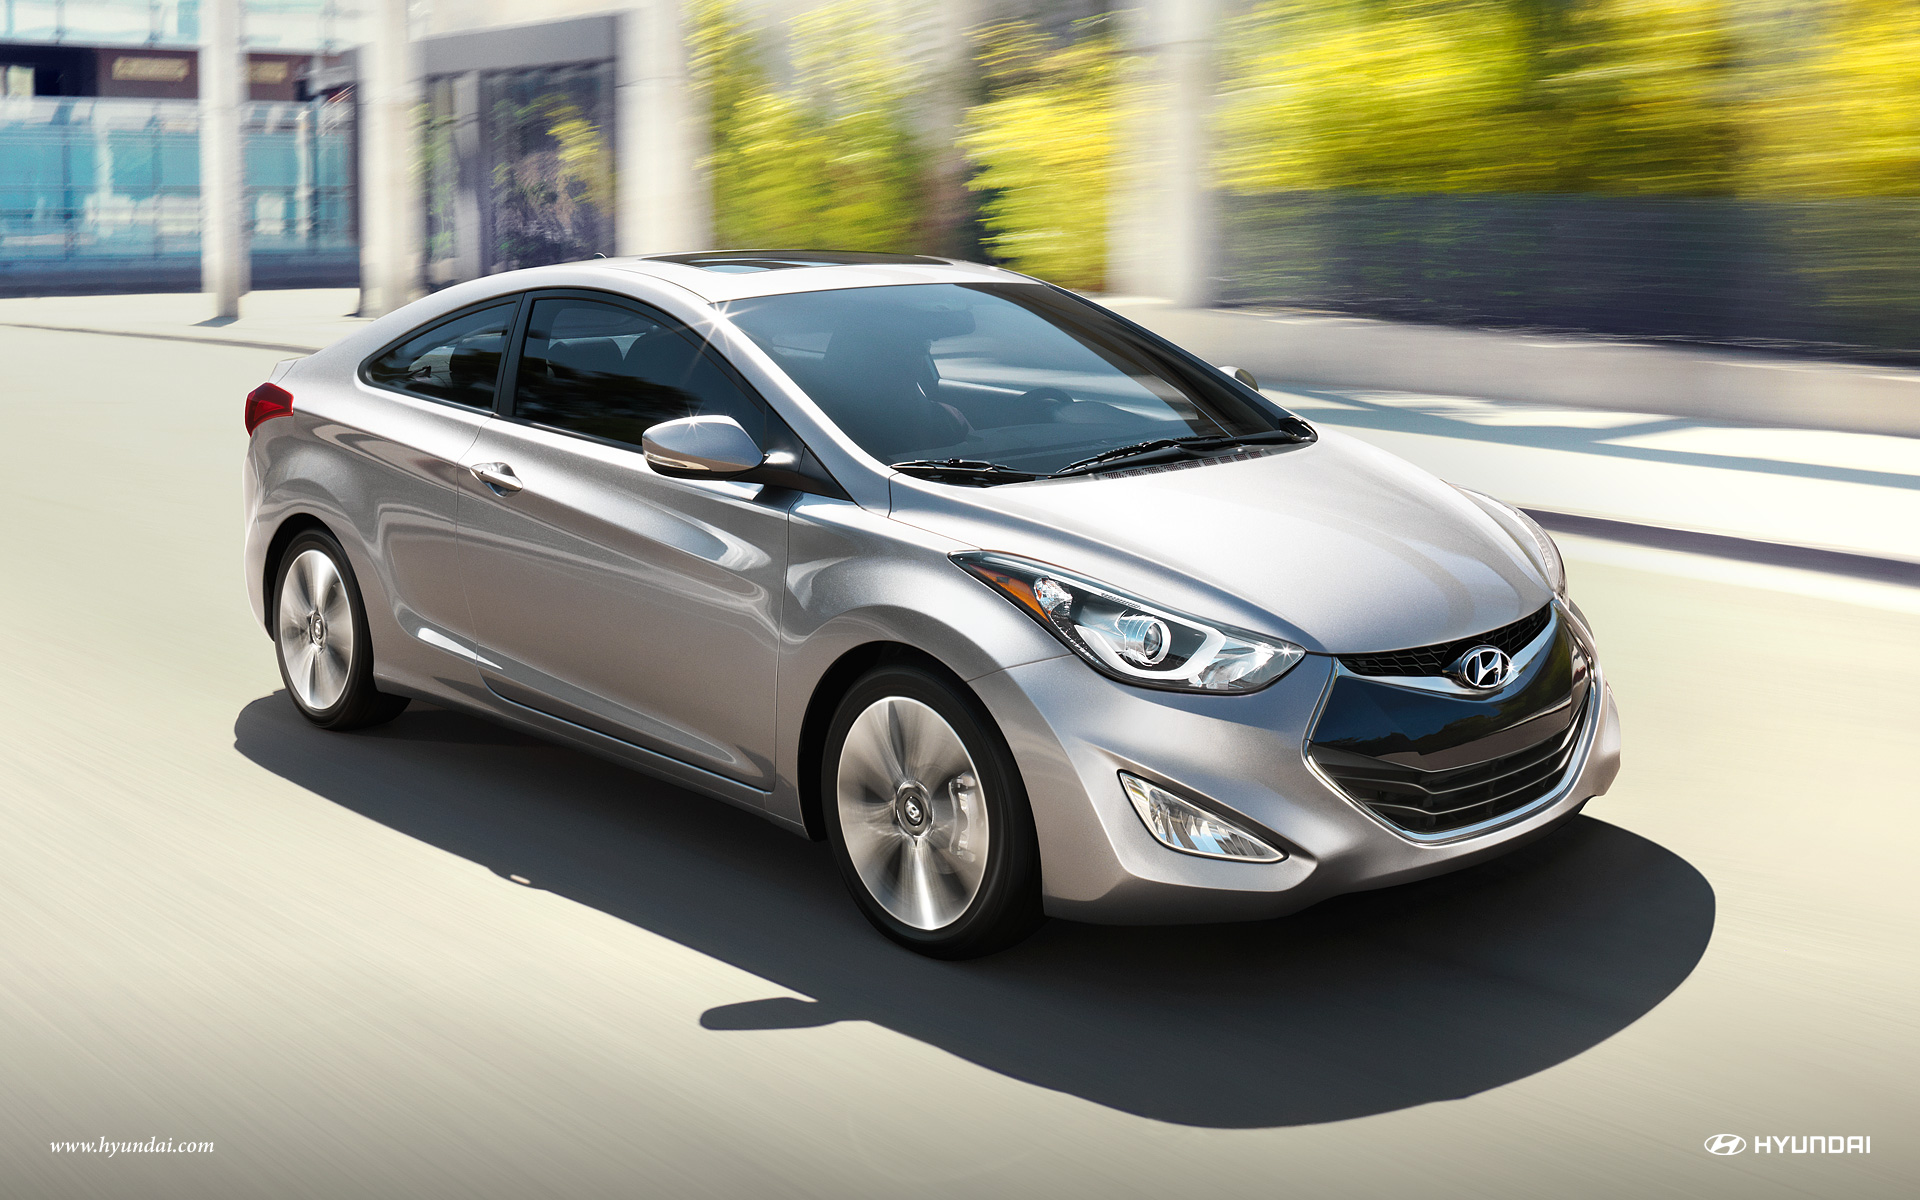 2014 hyundai elantra coupe information and photos momentcar. Black Bedroom Furniture Sets. Home Design Ideas